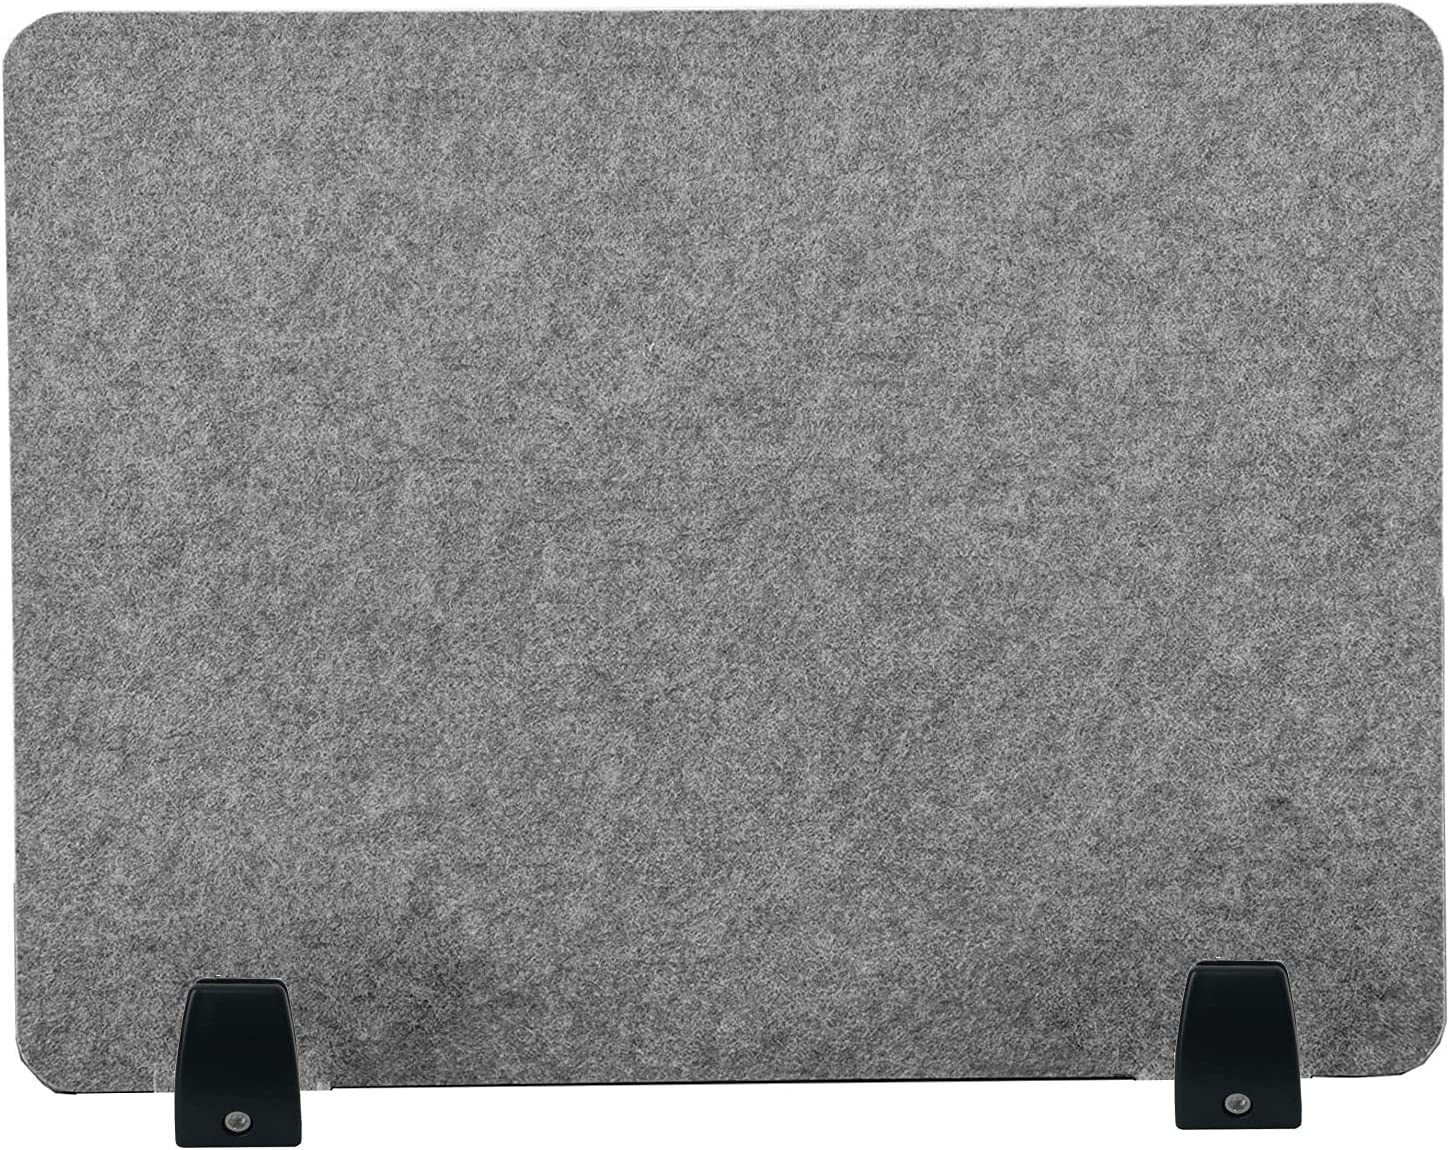 """Amycheer Polyester Acoustic Desk Divider Panels Office Partition Lightweight Desk Privacy Panel Sound Absorbing Desk Screen for Offices/Classroom/Library/Call Center 20×16""""(Light Gray, Without Clip)"""